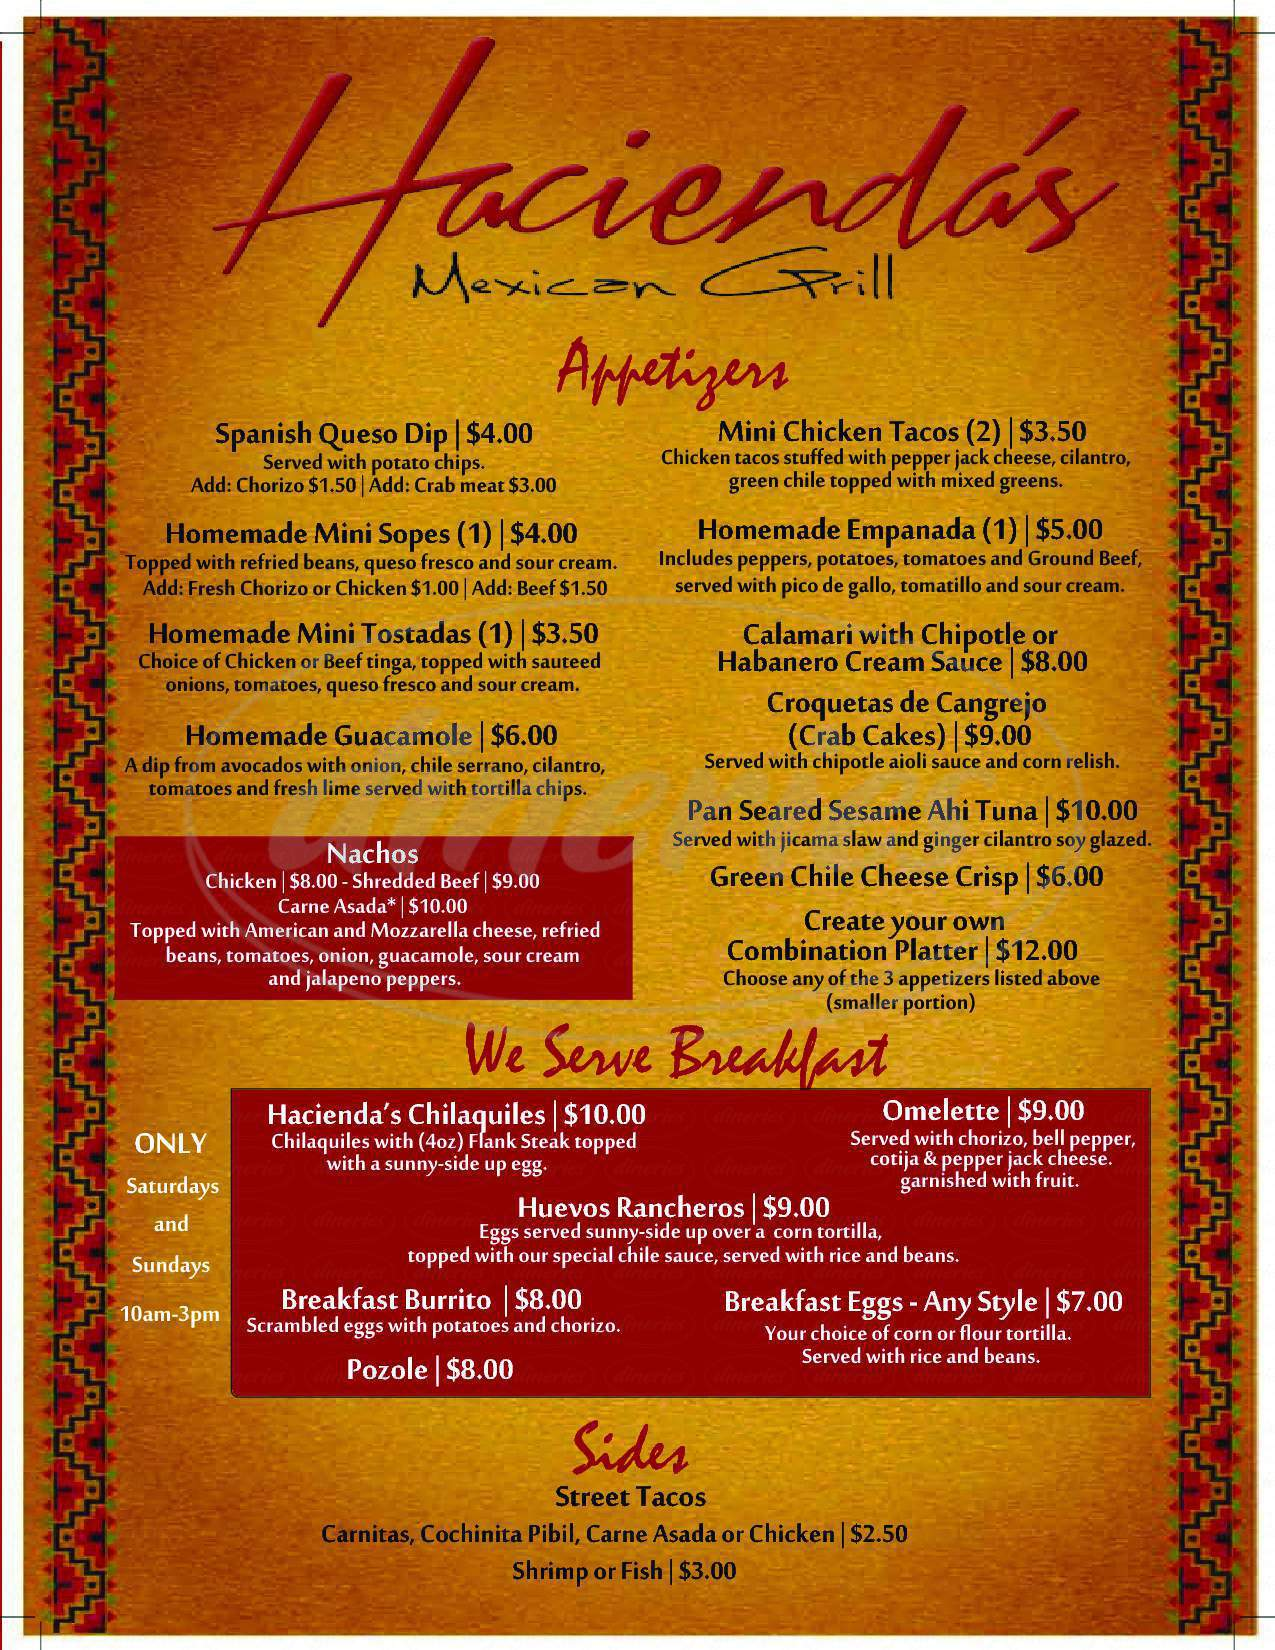 menu for Hacienda's Mexican Grill